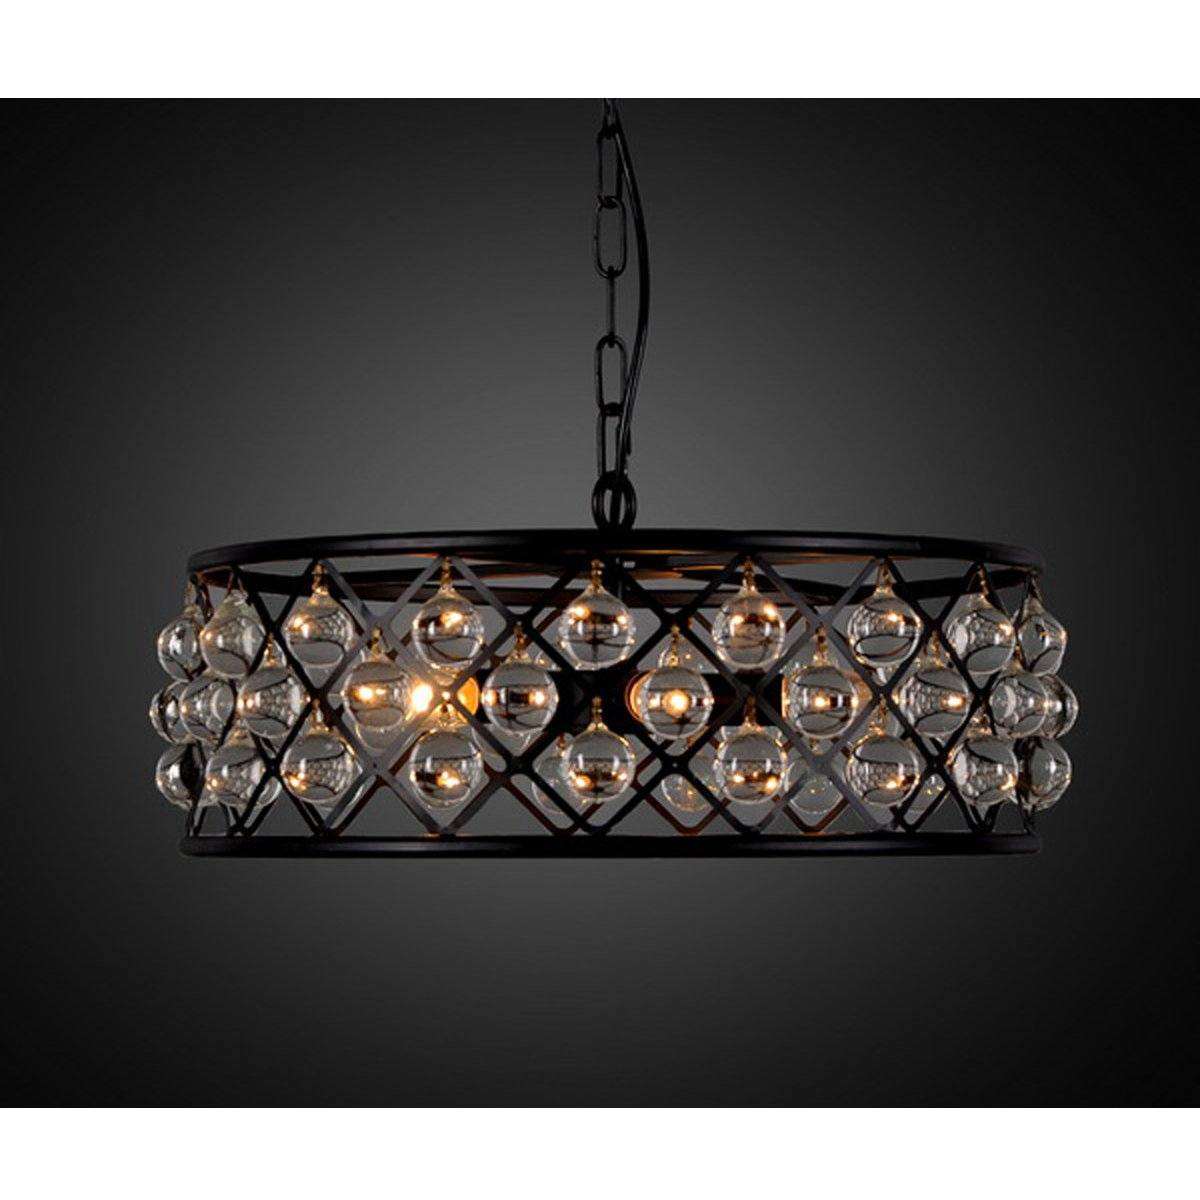 NOUVEAU LARGE CHANDELIER - Showhome Furniture